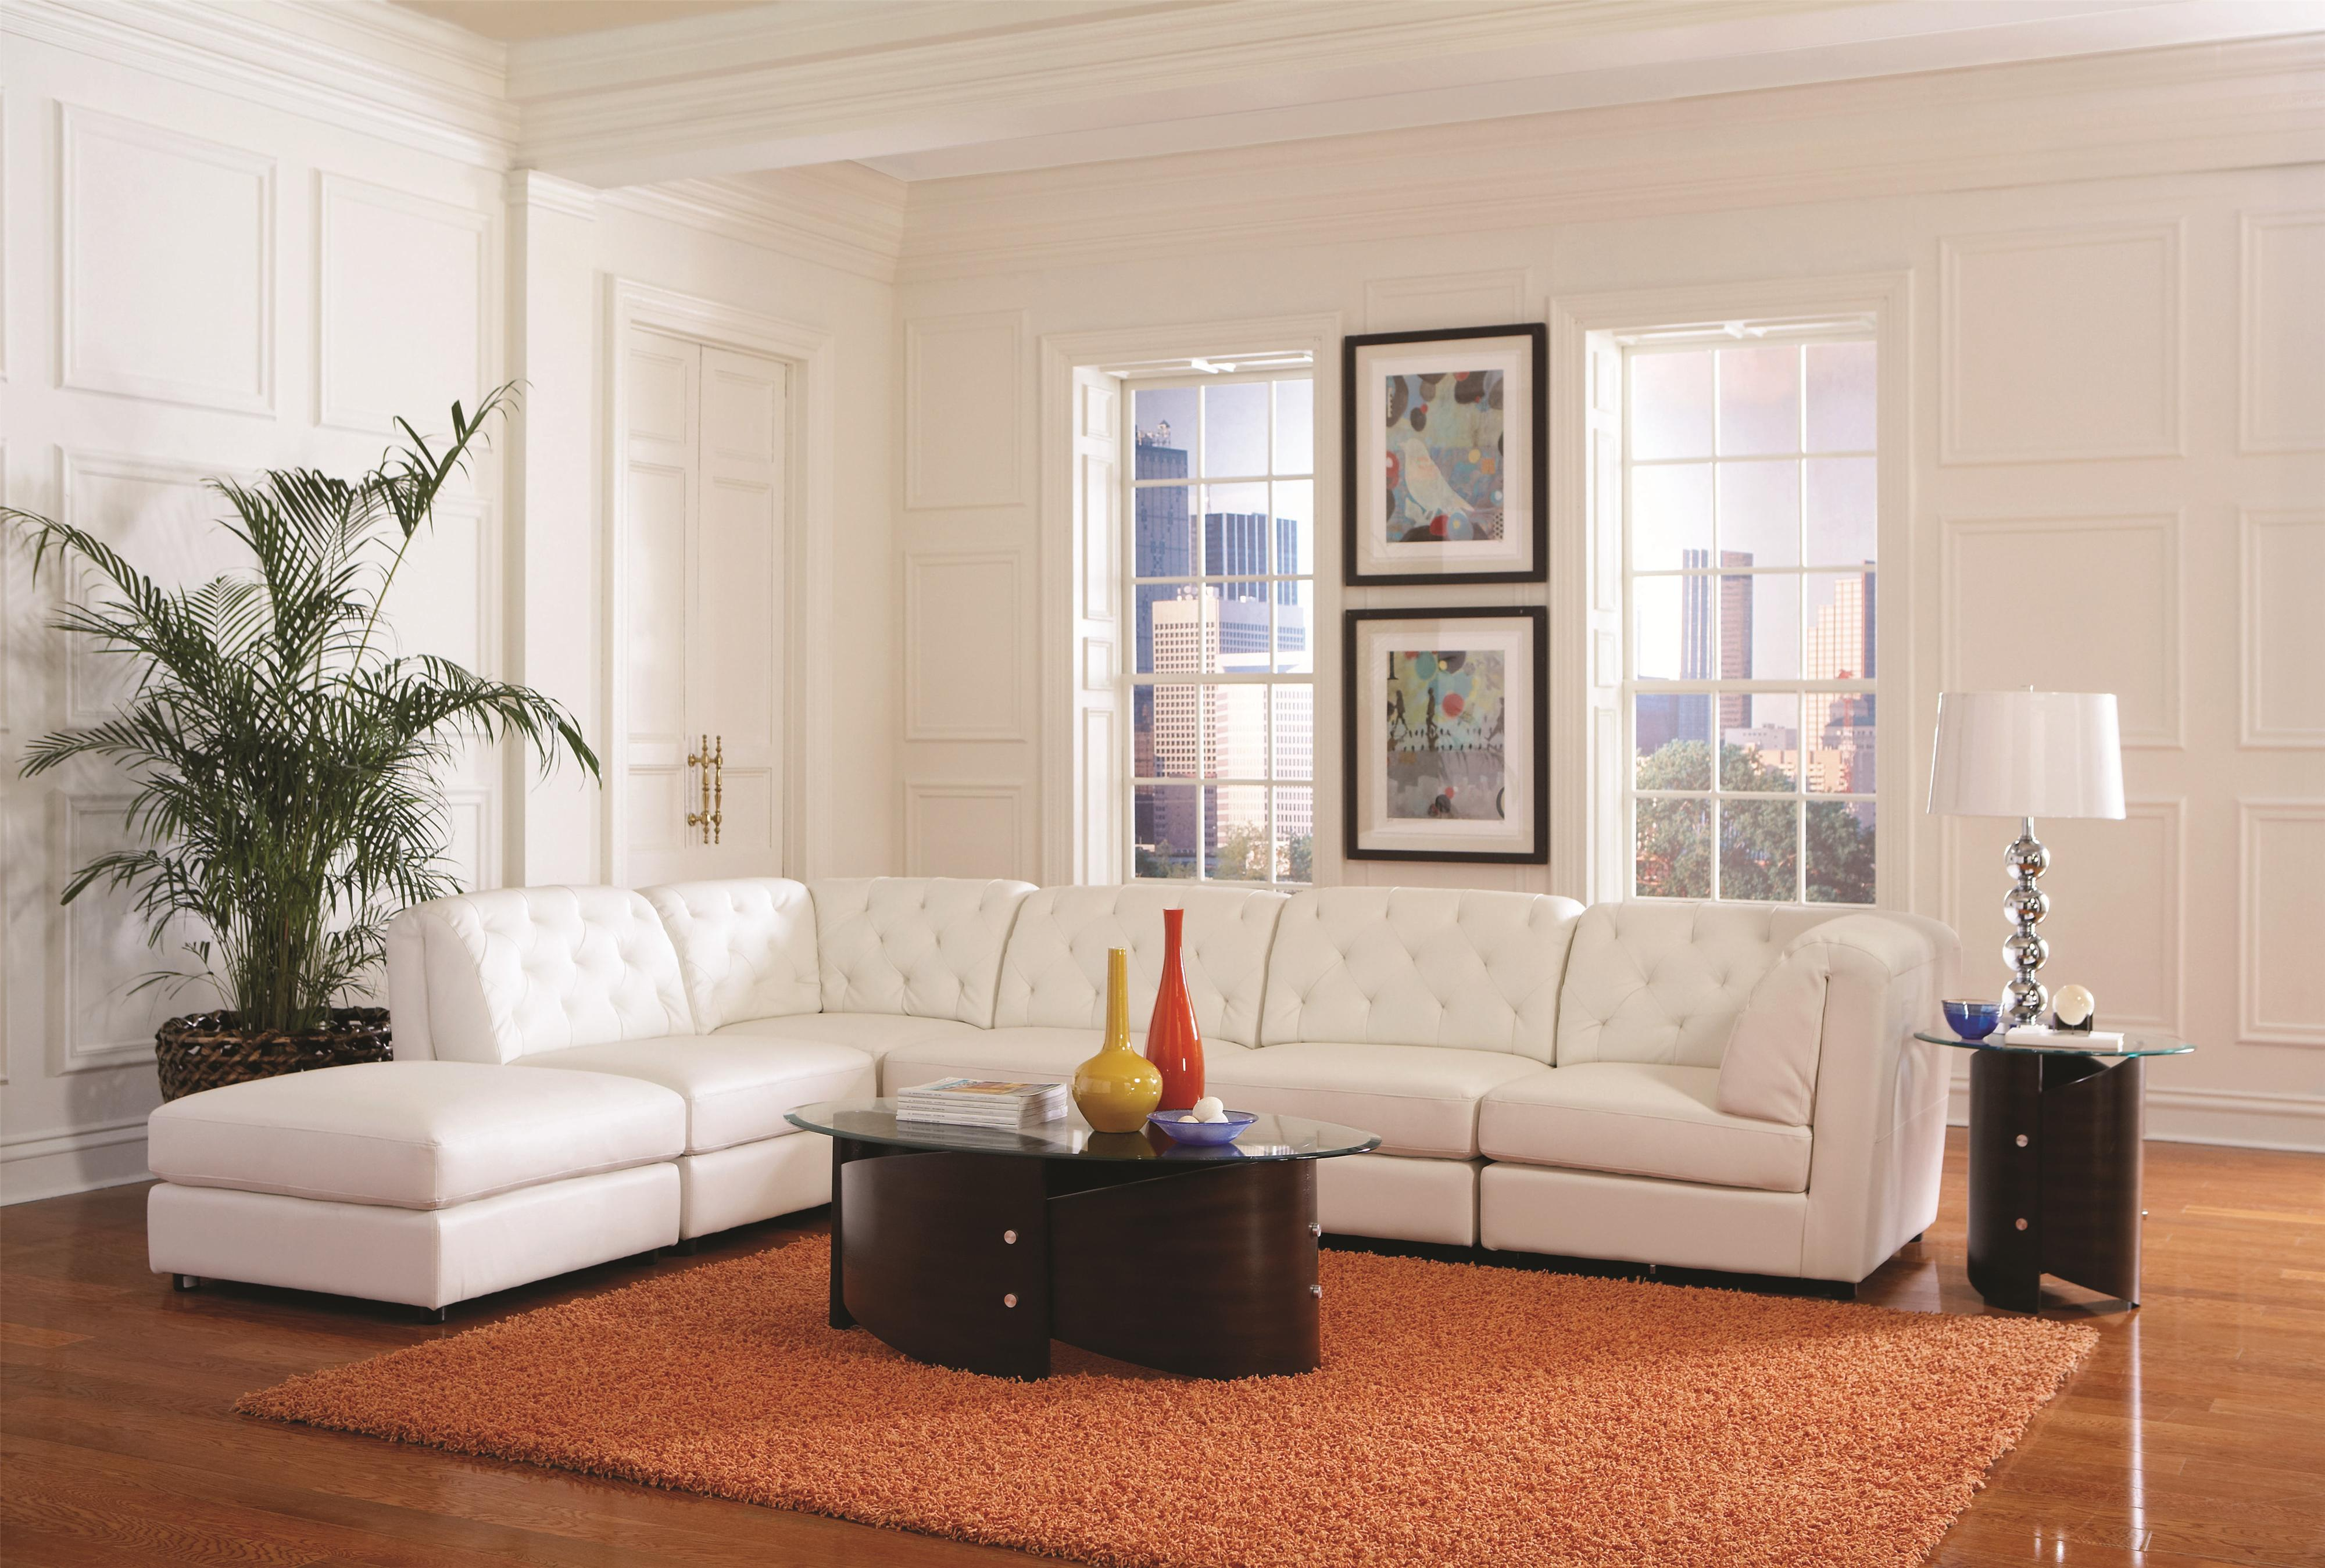 Modern Leather Sectional Sofa Stunning Small Sectional Sofas